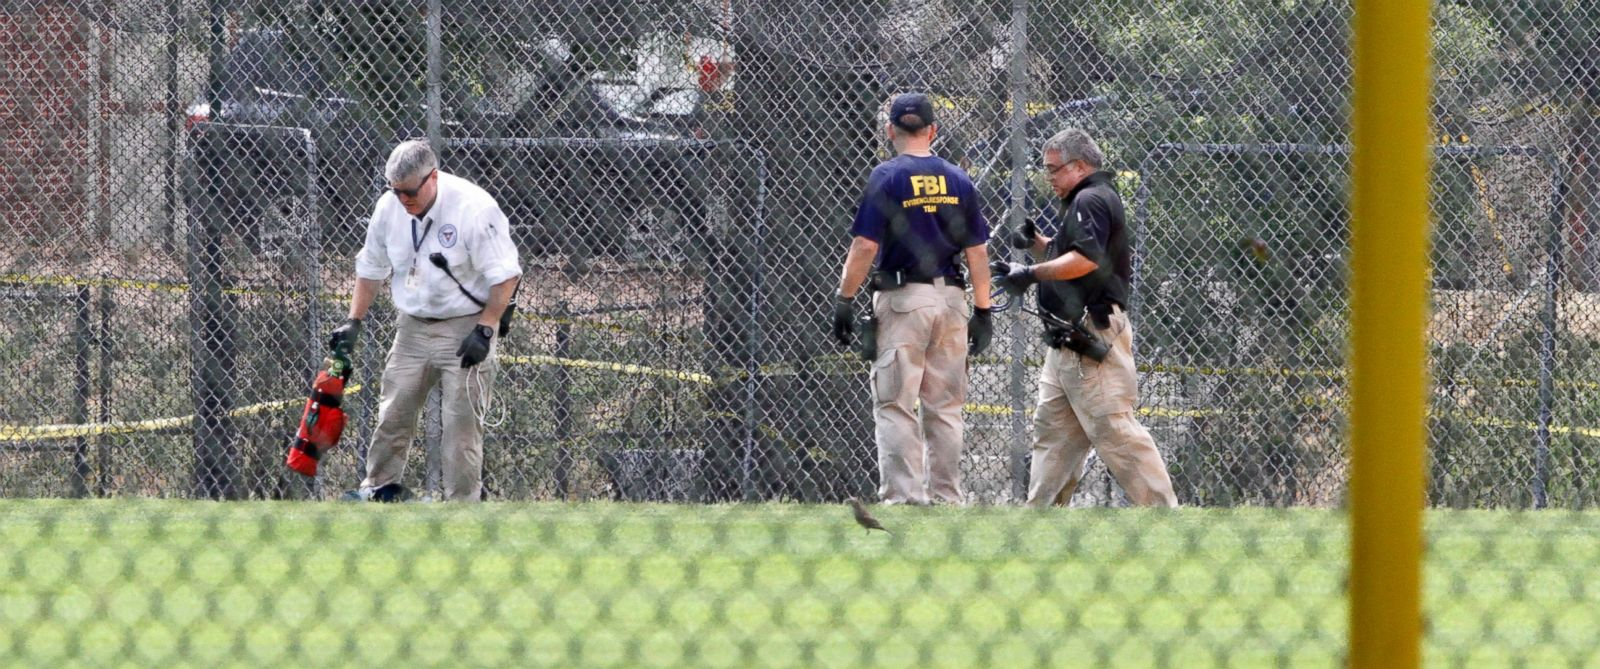 PHOTO: FBI agents continue to search for evidence on the baseball field in Alexandria, Va., June 15, 2017, the day after House Majority Whip Steve Scalise of La. was shot during during a congressional baseball practice.